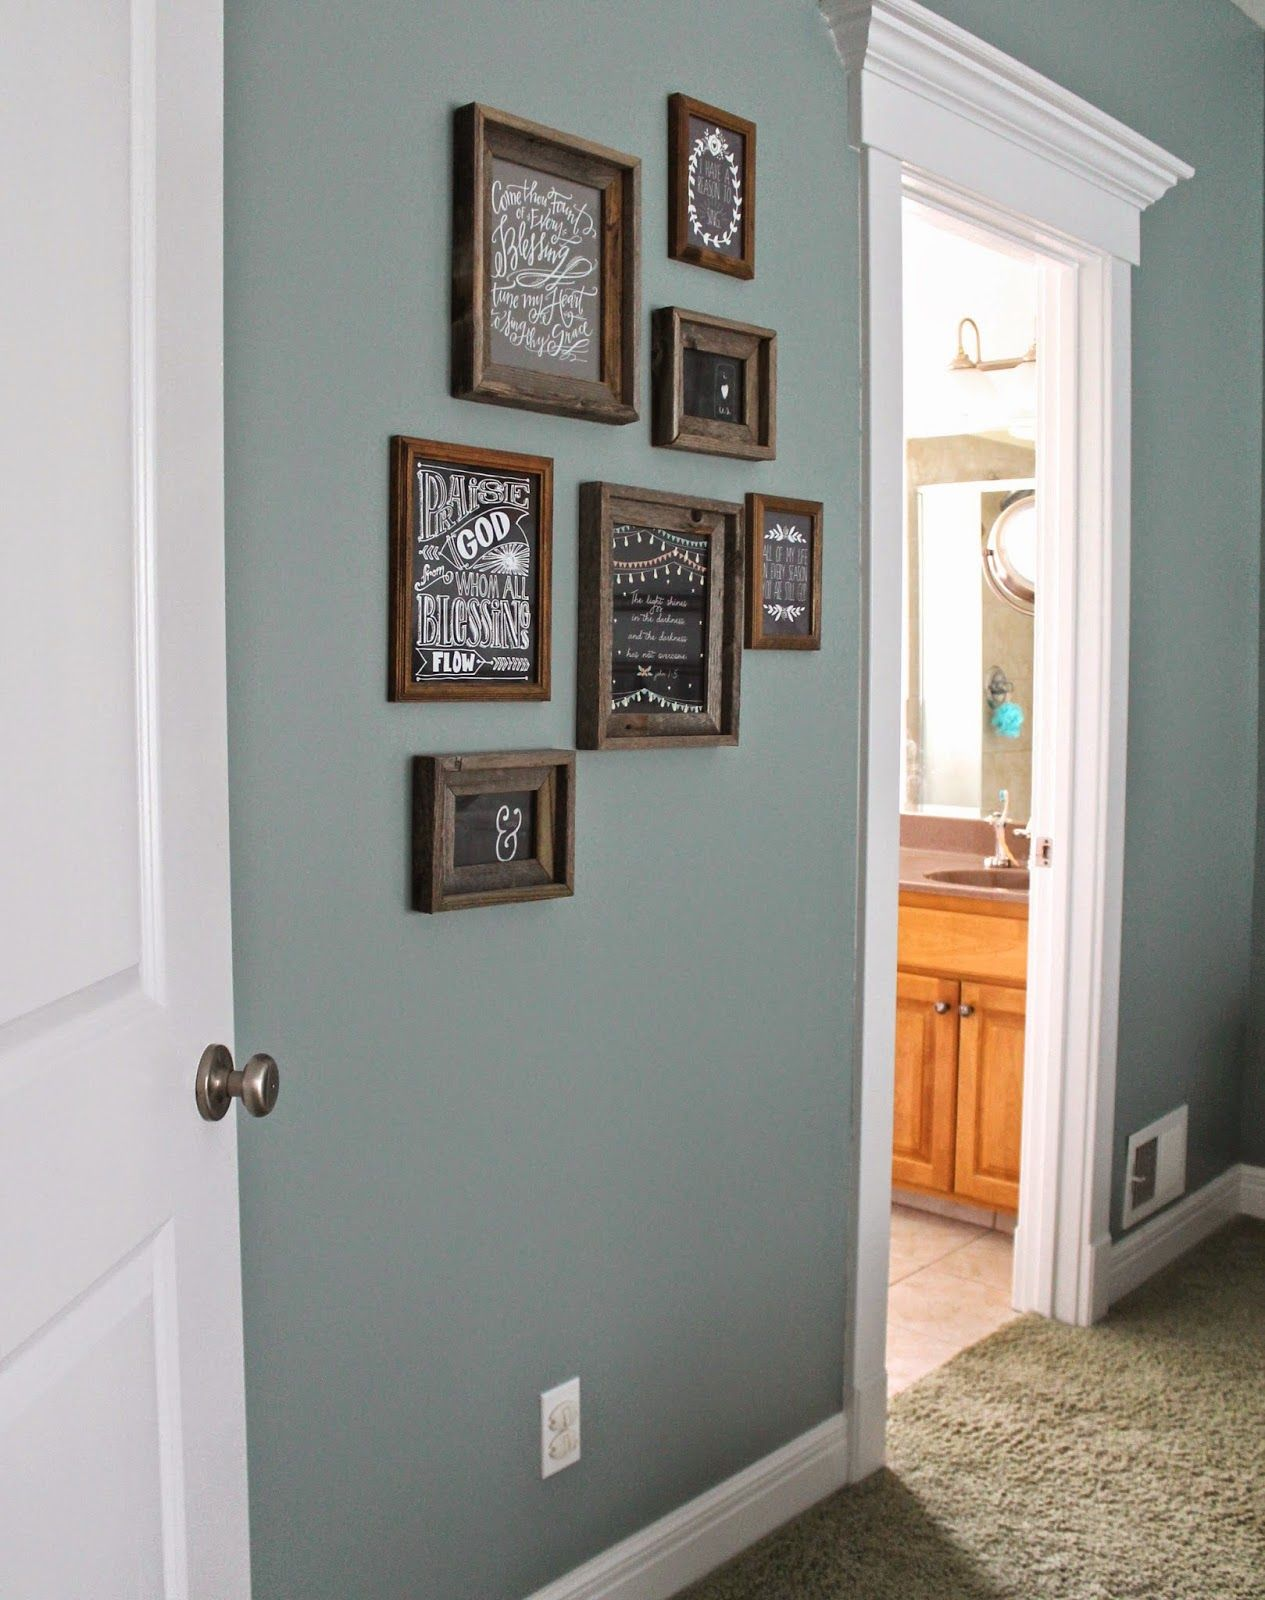 Paint color valspar blue arrow dark rustic frames hobby Wall paint colors